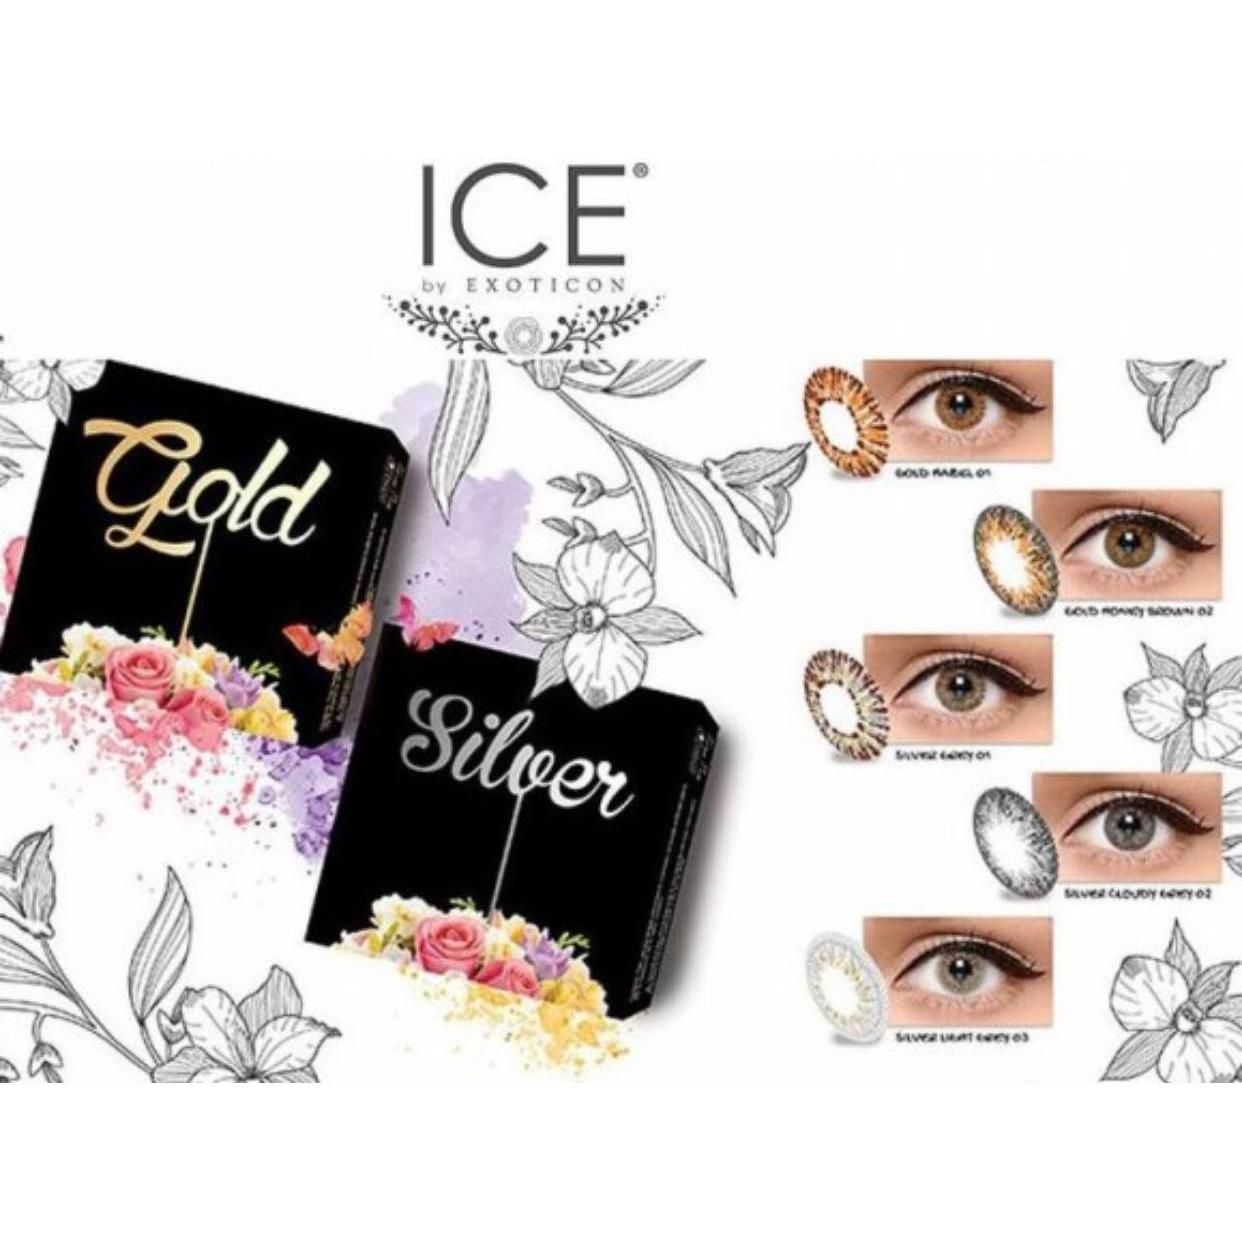 New baru - Ice Gold By Softlens Exoticon X2 (2 Pilihan Warna)  4284ec68e8